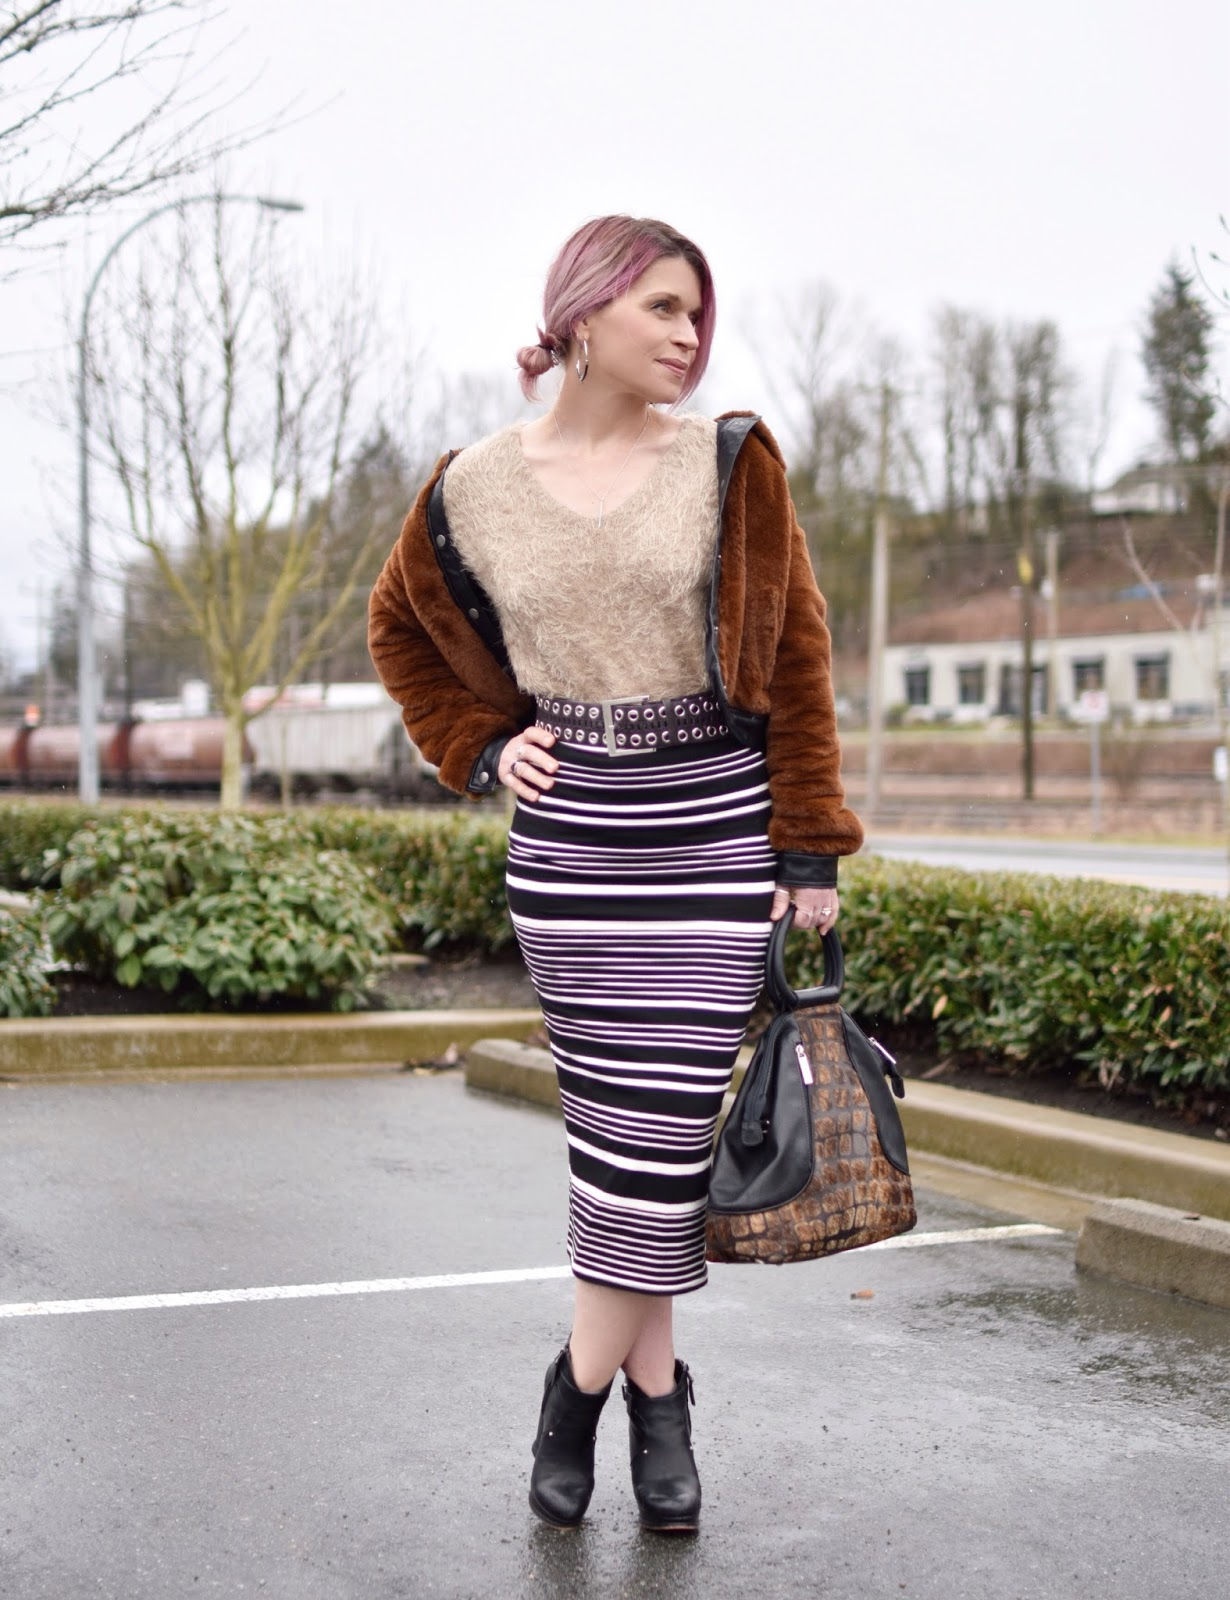 Monika Faulkner outfit inspiration - styling a striped midi-length pencil skirt with wedge booties and a furry bomber jacket